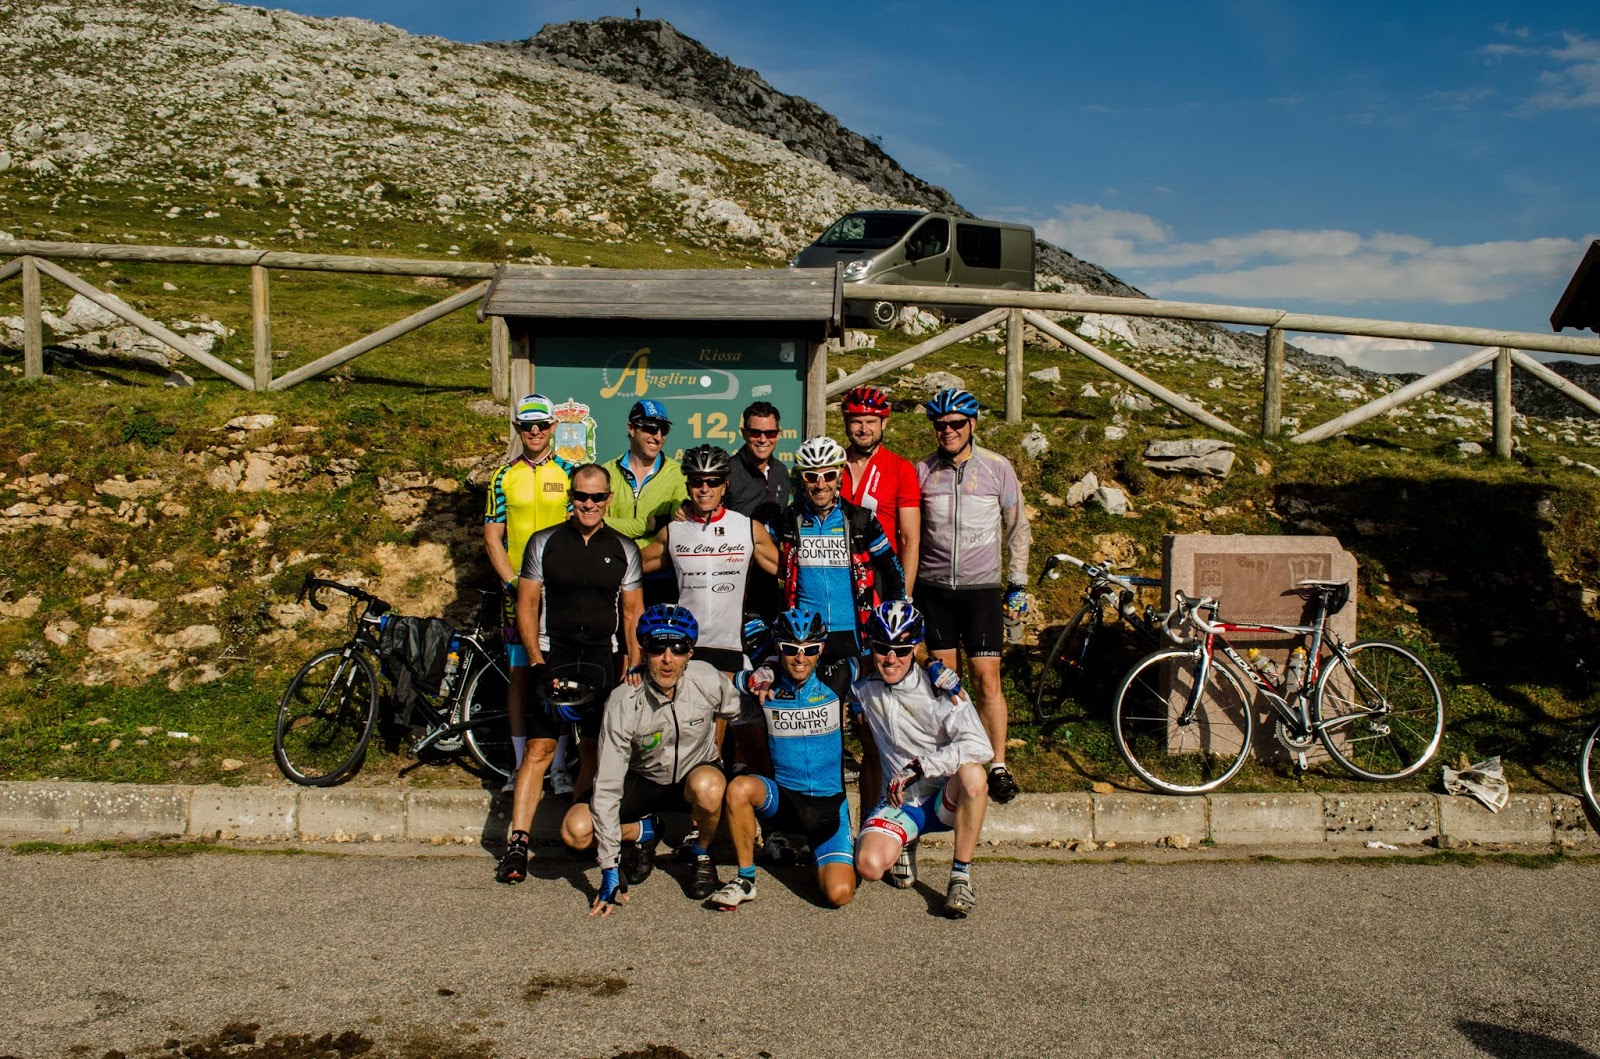 Best Cycling Climbs in Spain - Biking the Angliru